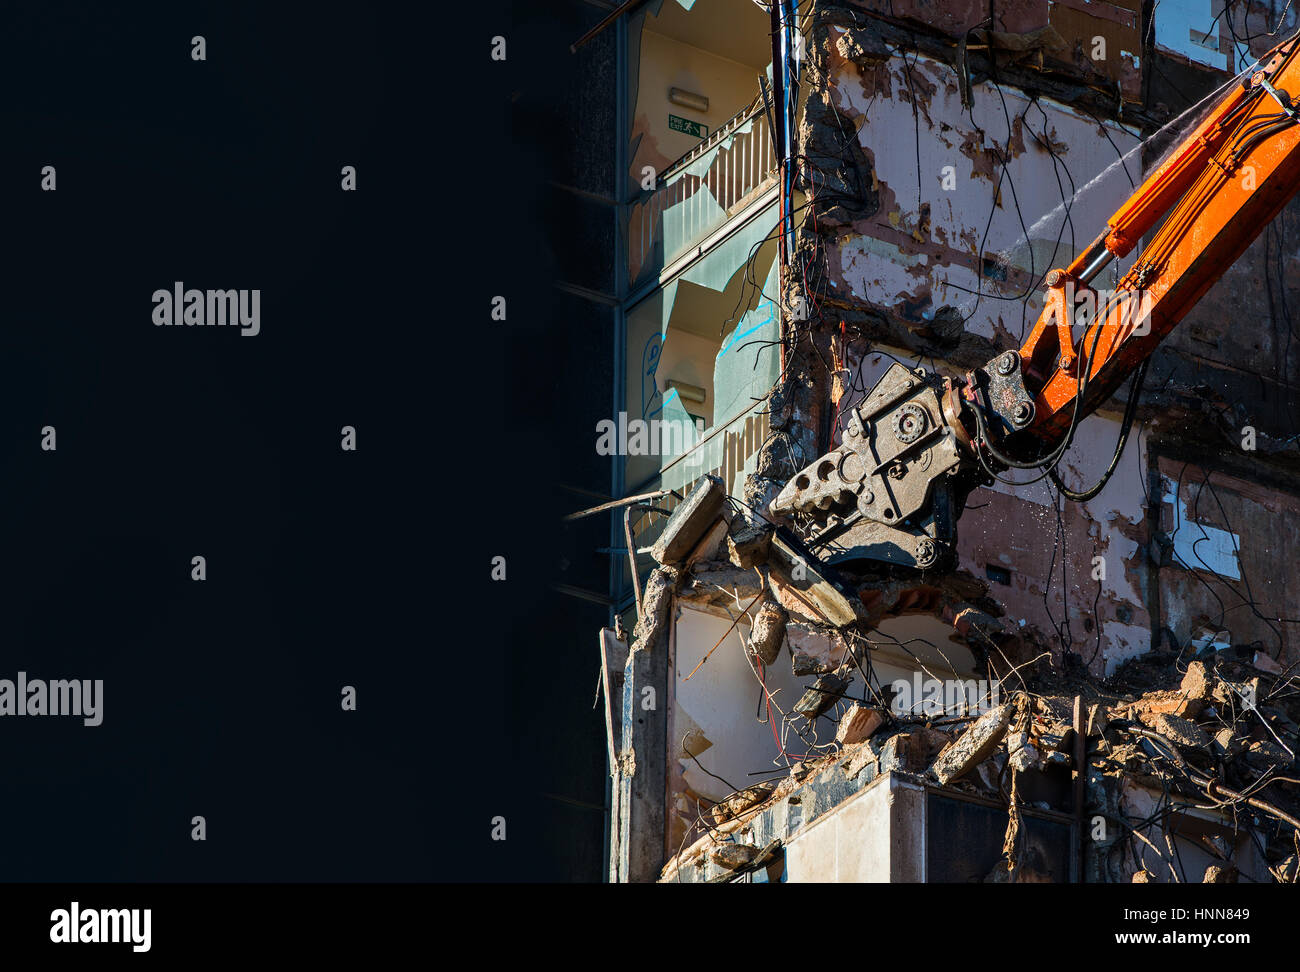 Demolition with High Reach Excavator at work - Stock Image